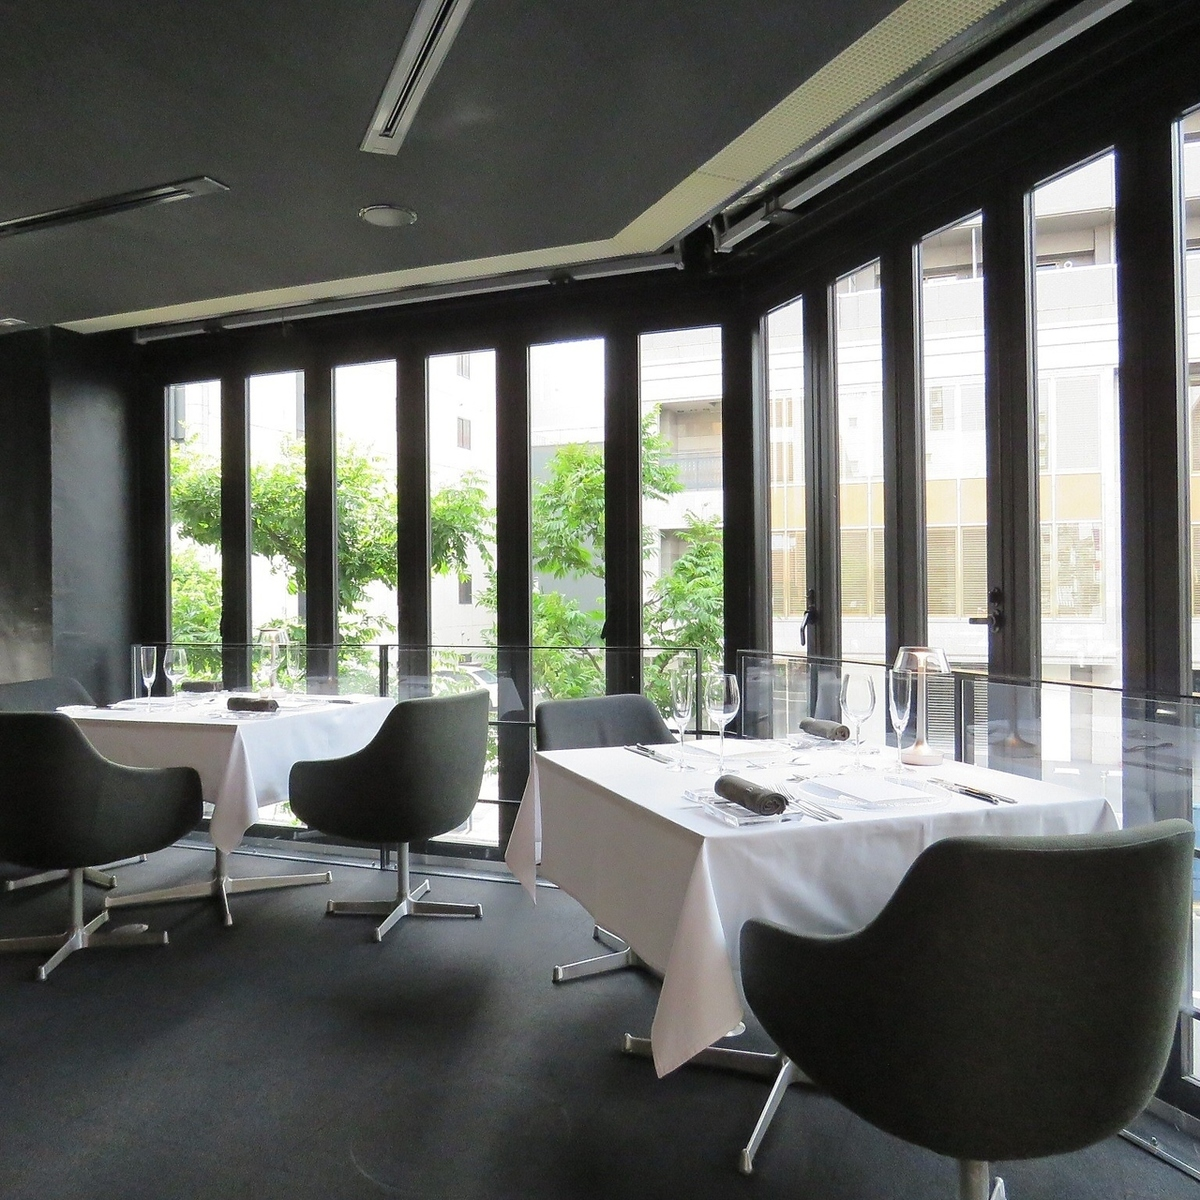 Enjoy fine cuisine in a fine space away from the noise of the city.